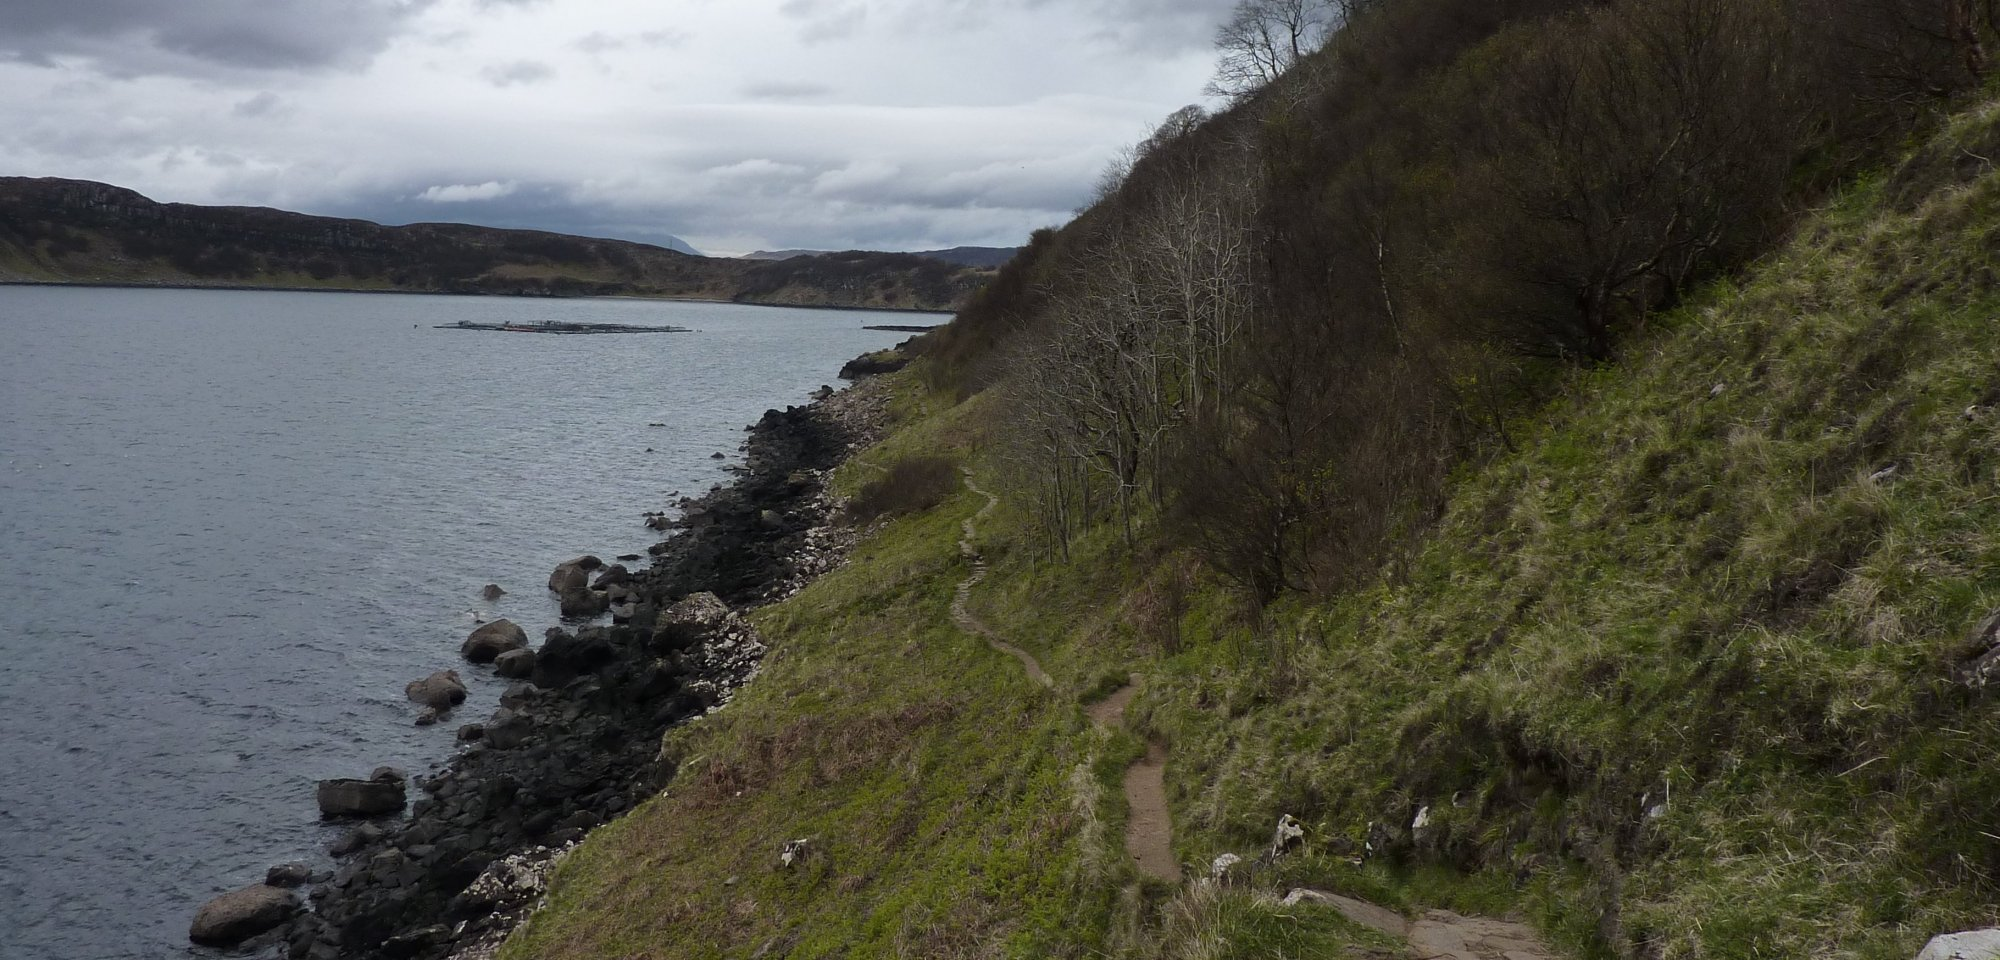 The path into Portree is well-laid and easy to follow